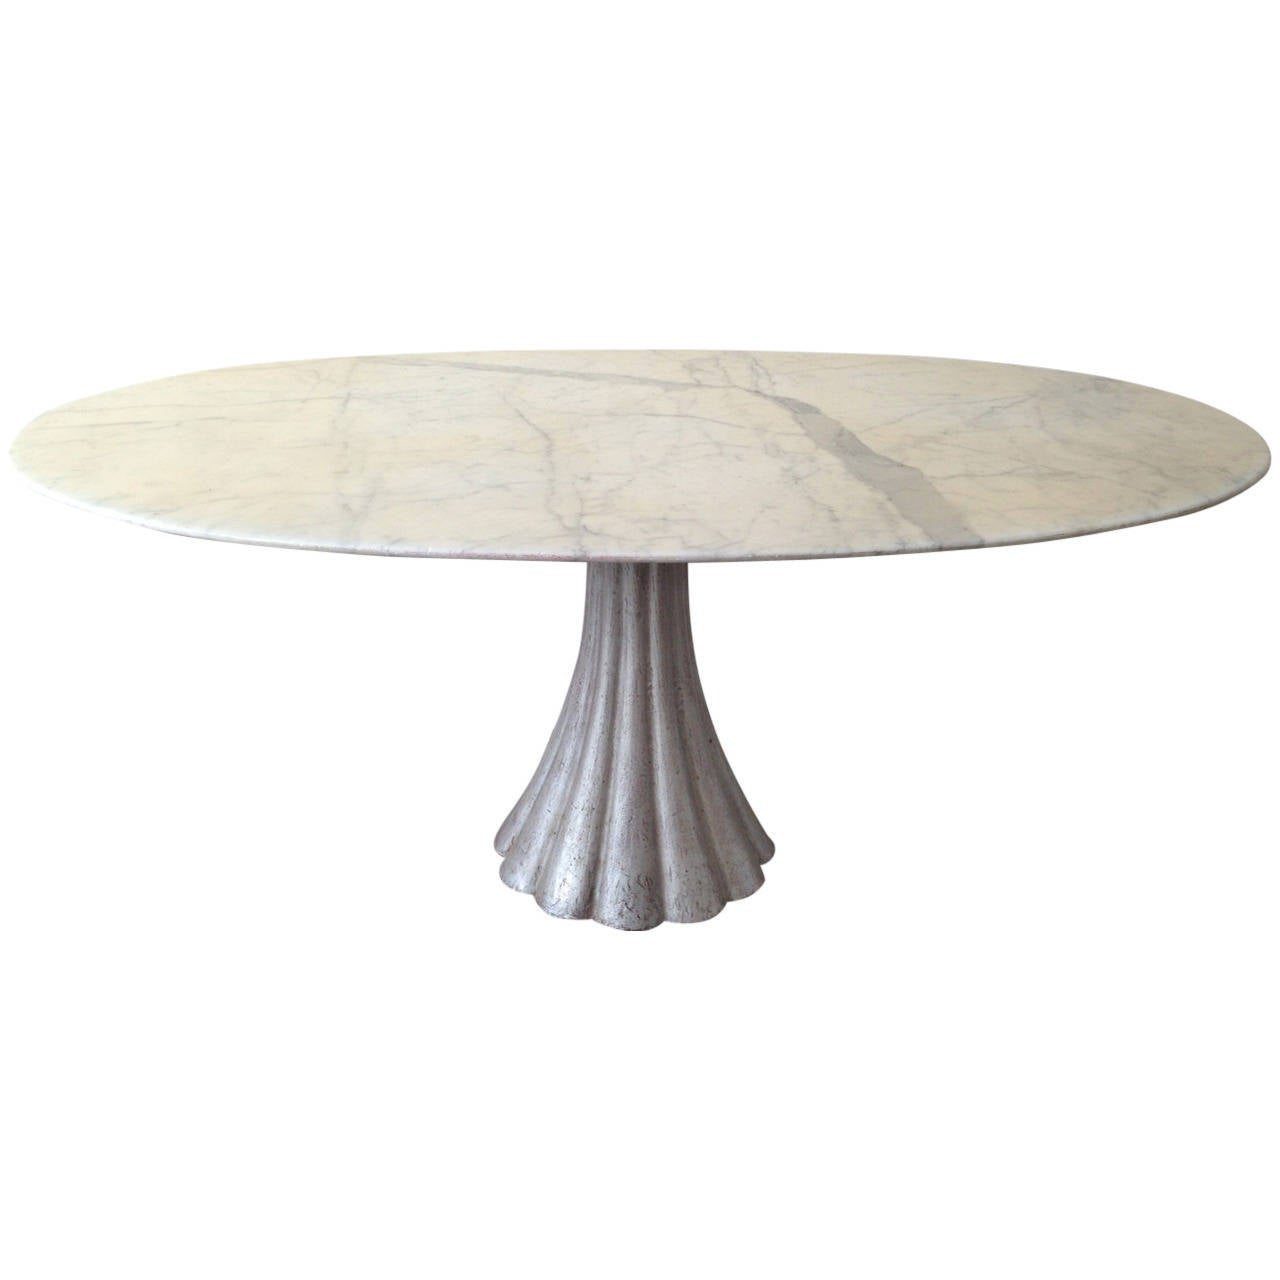 oval marble dining table in the manner of angelo mangiarotti at 1stdibs. Black Bedroom Furniture Sets. Home Design Ideas